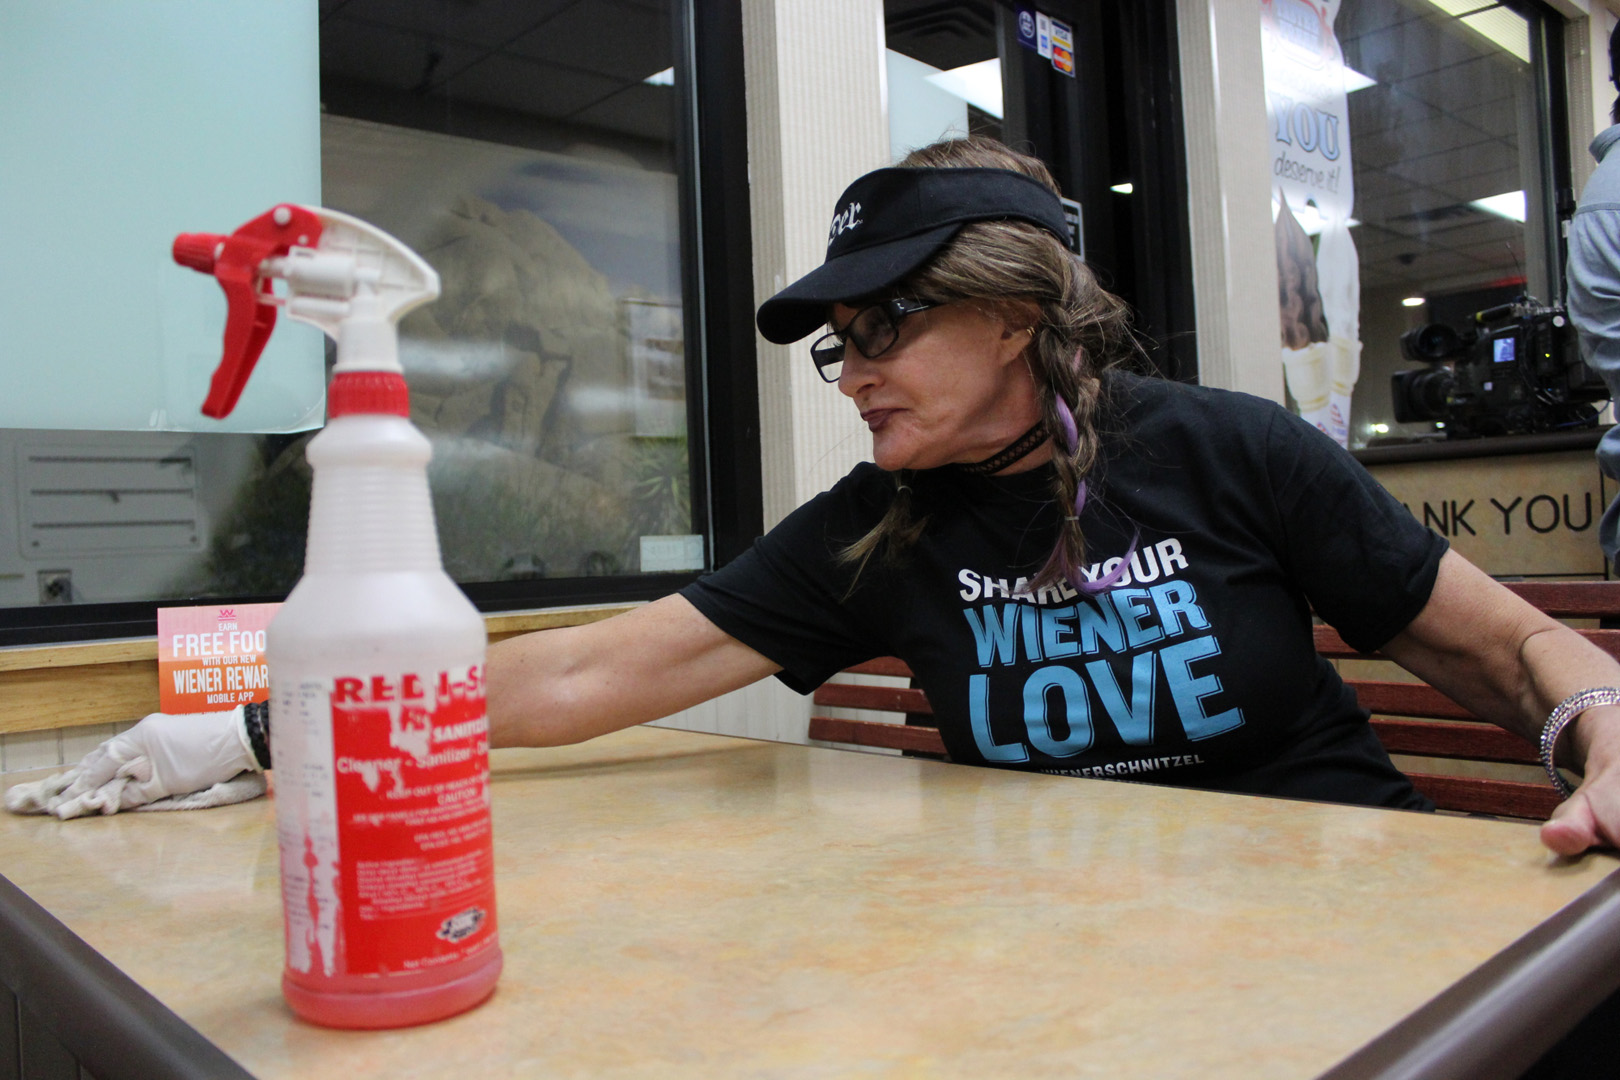 Cynthia wipes down a table while undercover at a Wienerschnitzel location.